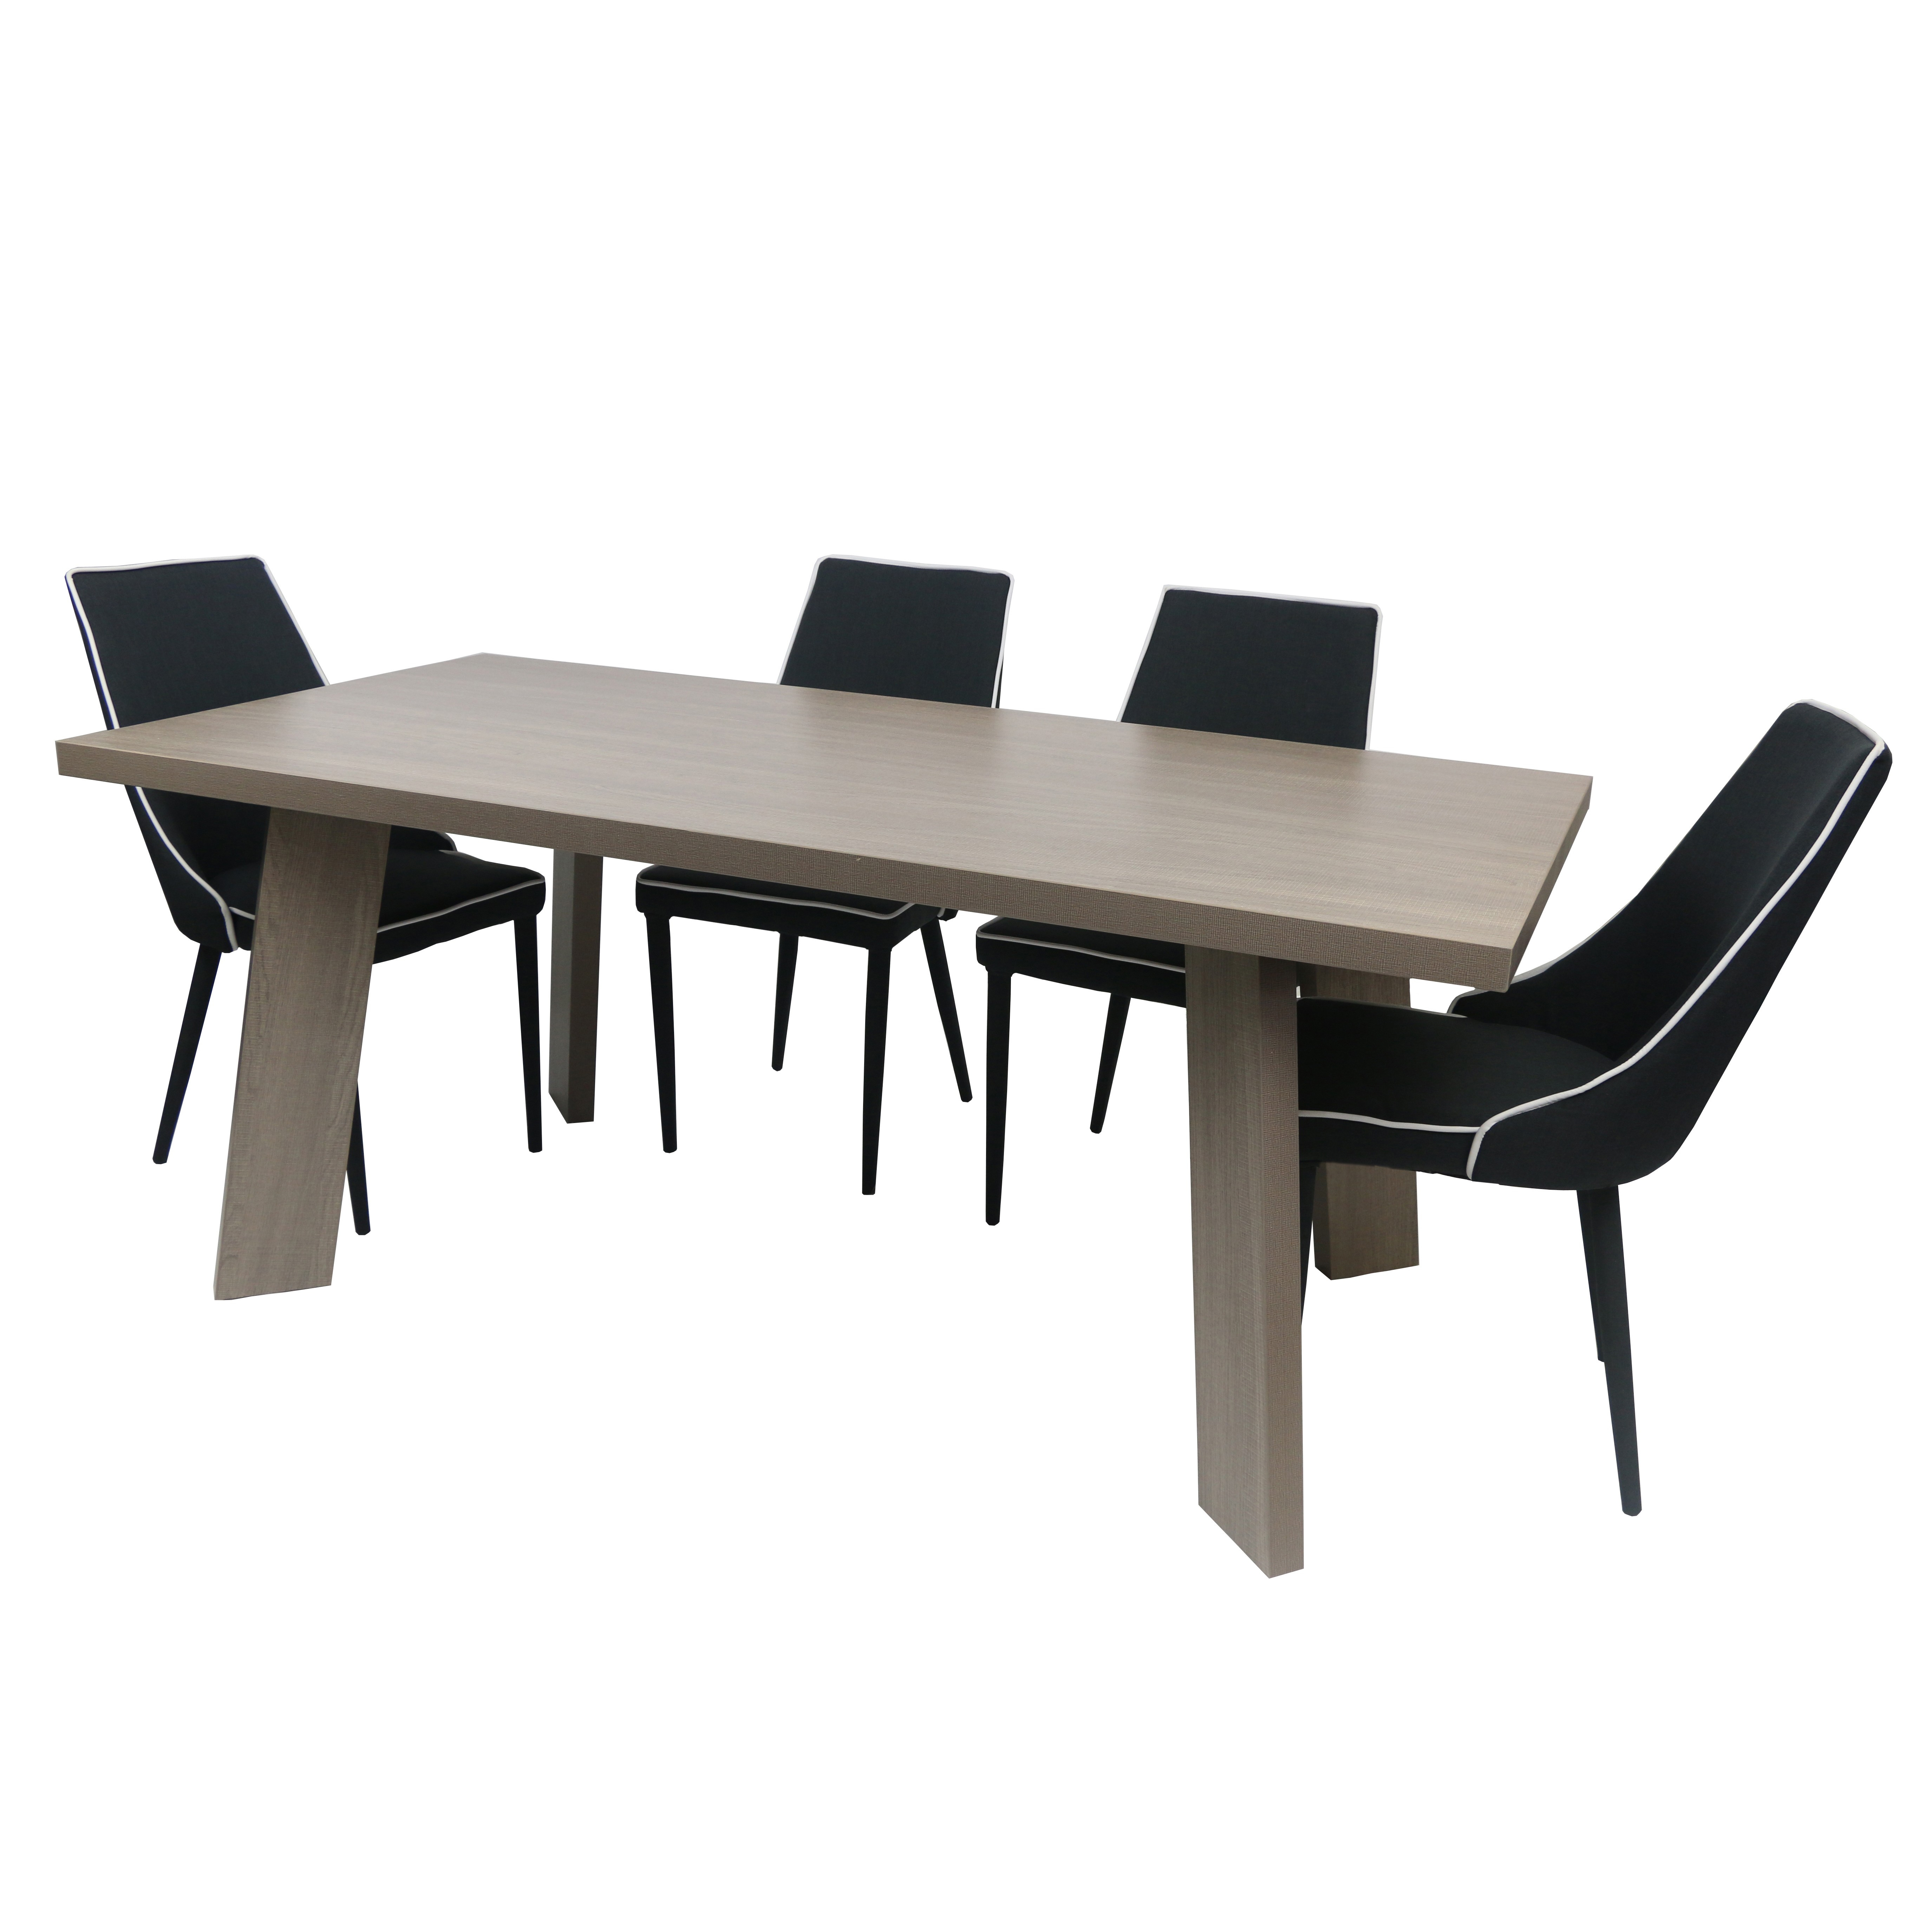 Inspiration about Melamine Dining Table London In 3 Colors Pertaining To 2019 Lonon 3 Piece Dining Sets (#7 of 20)